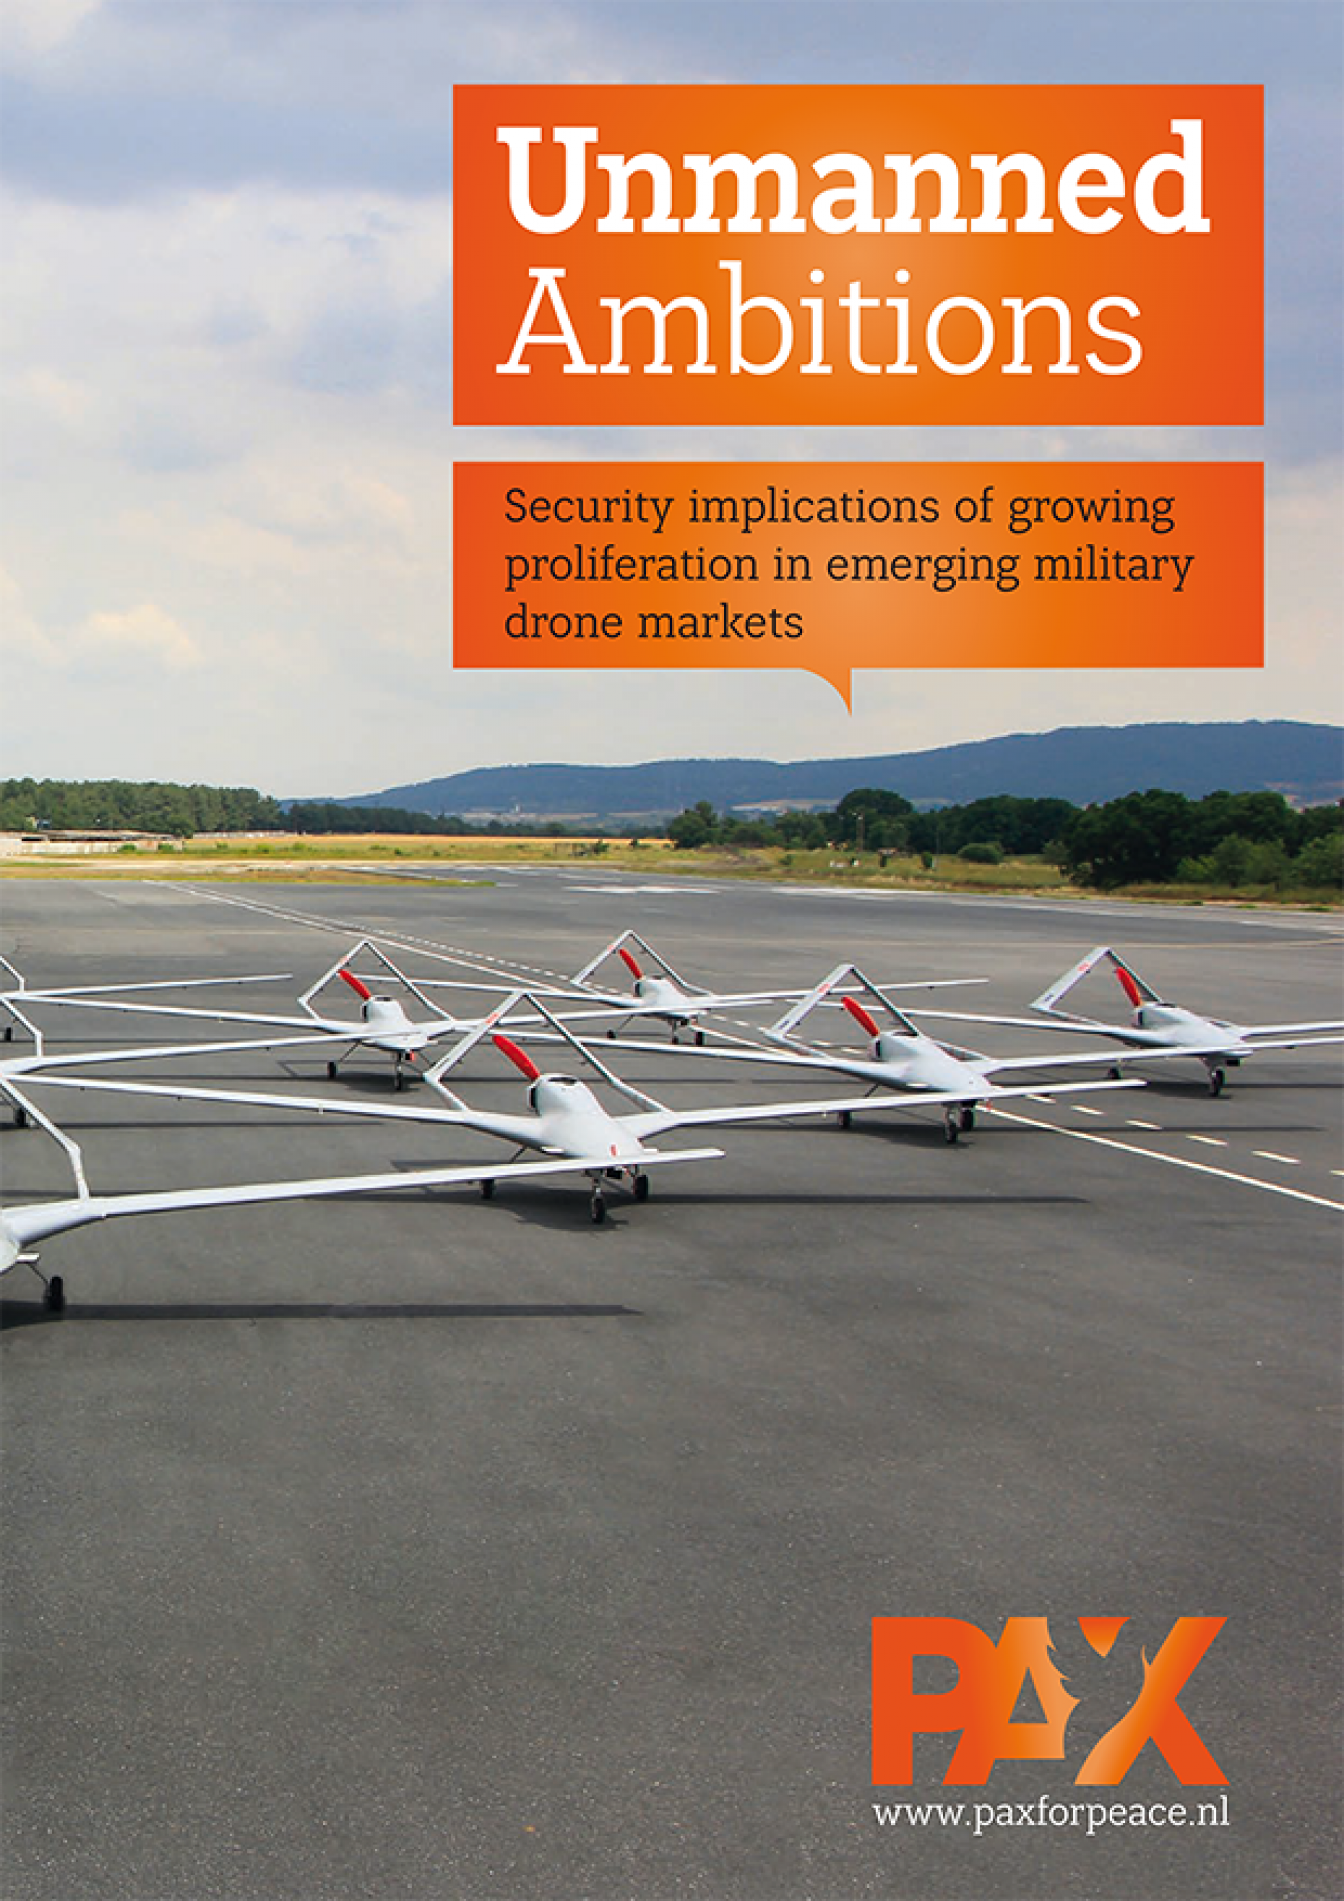 Unmanned Ambitions report